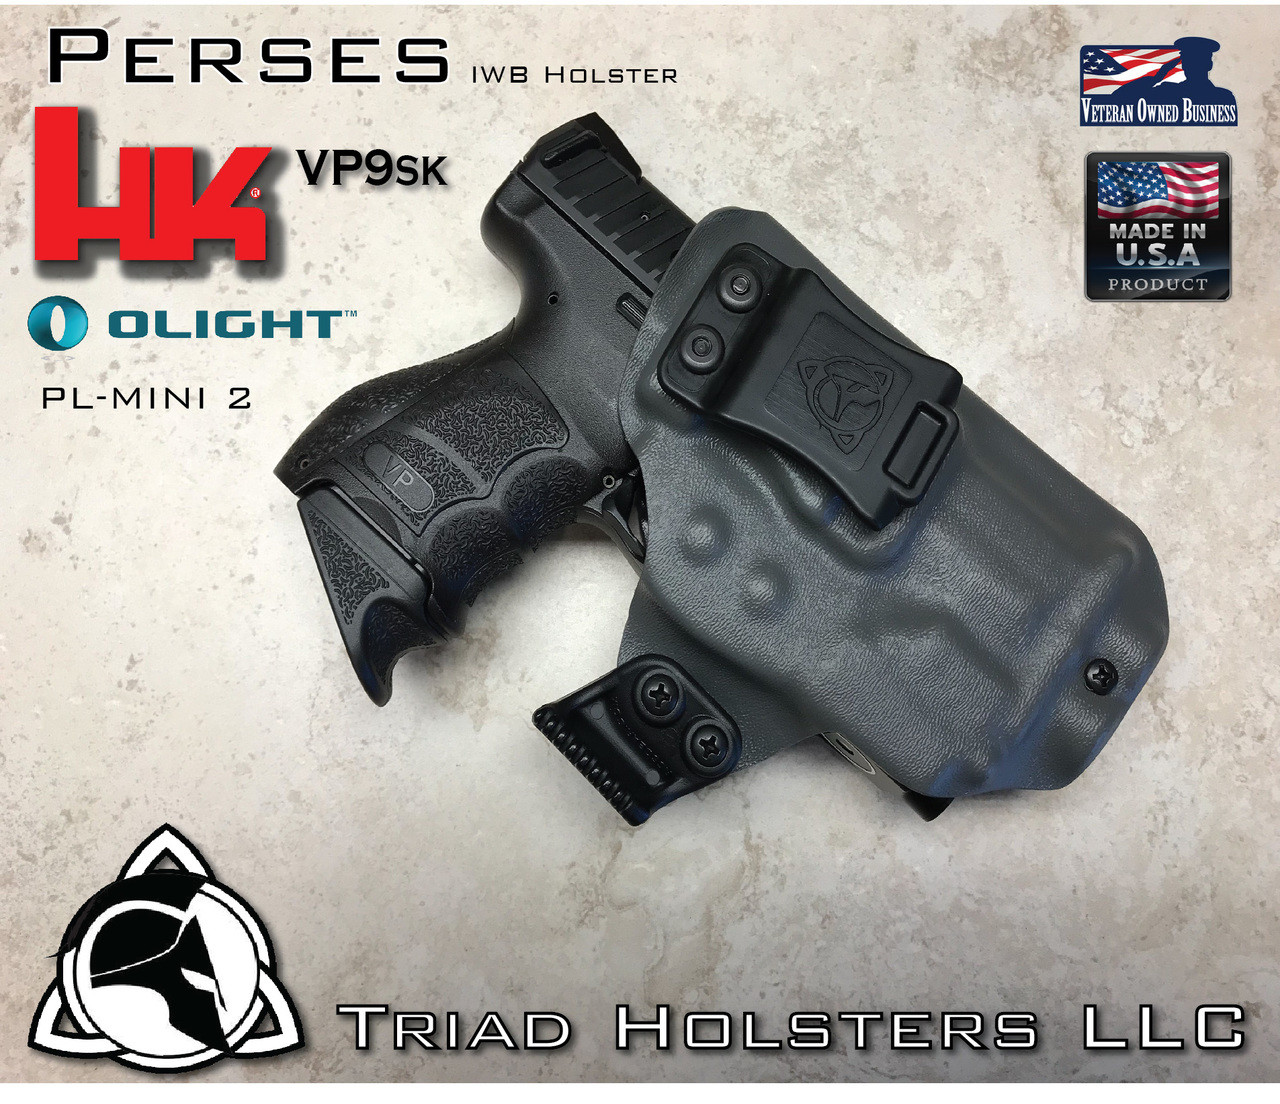 Kydex Holster HK VP9SK and Olight PL-Mini 2 Perses IWB Inside the Waistband